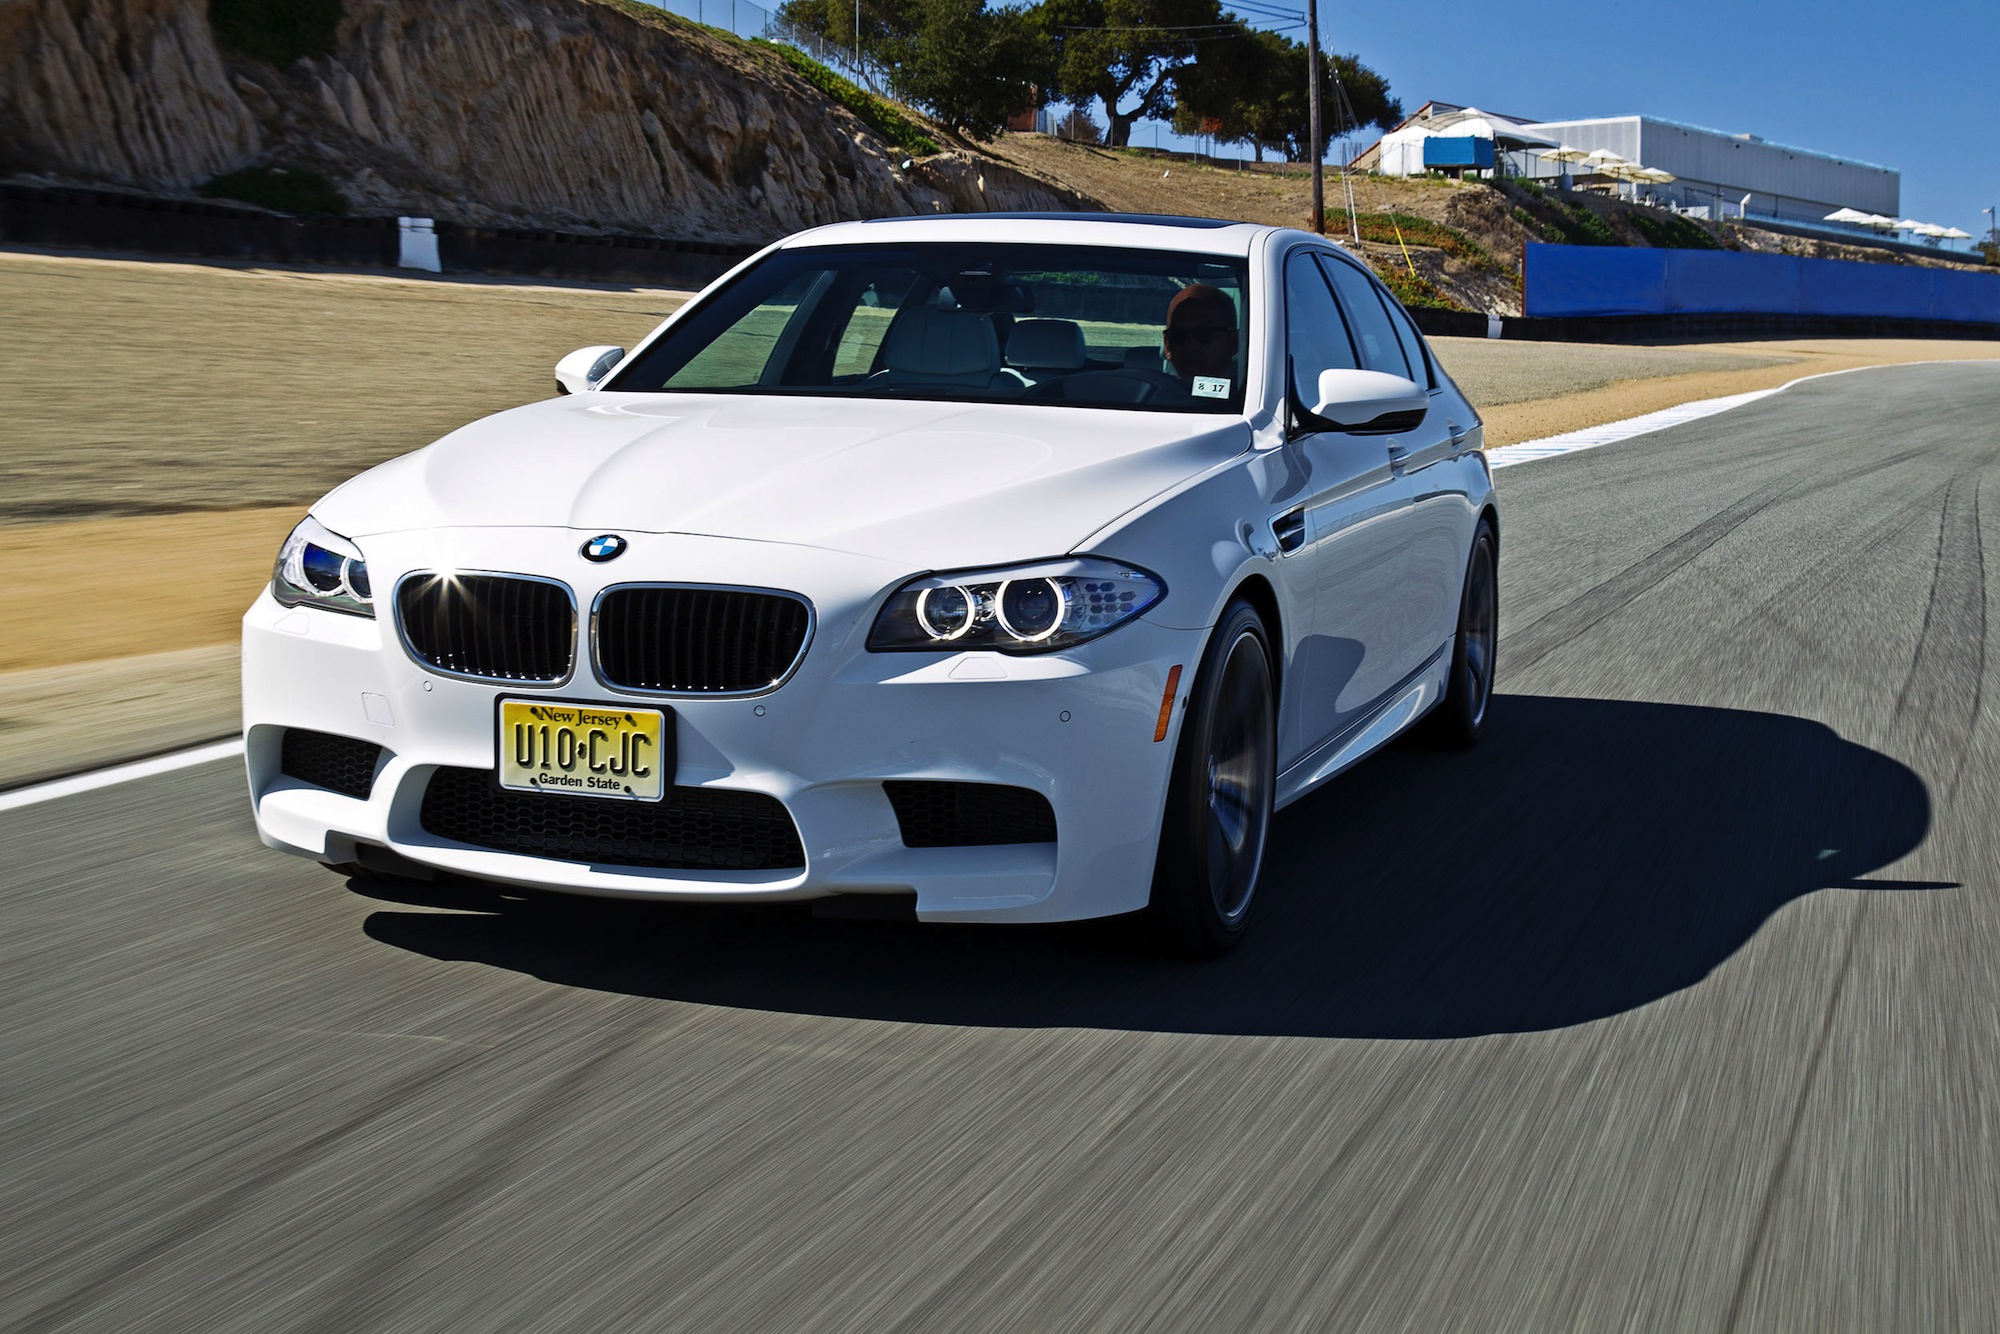 2013 BMW M5, M6 Recalled For Potential Engine Failure